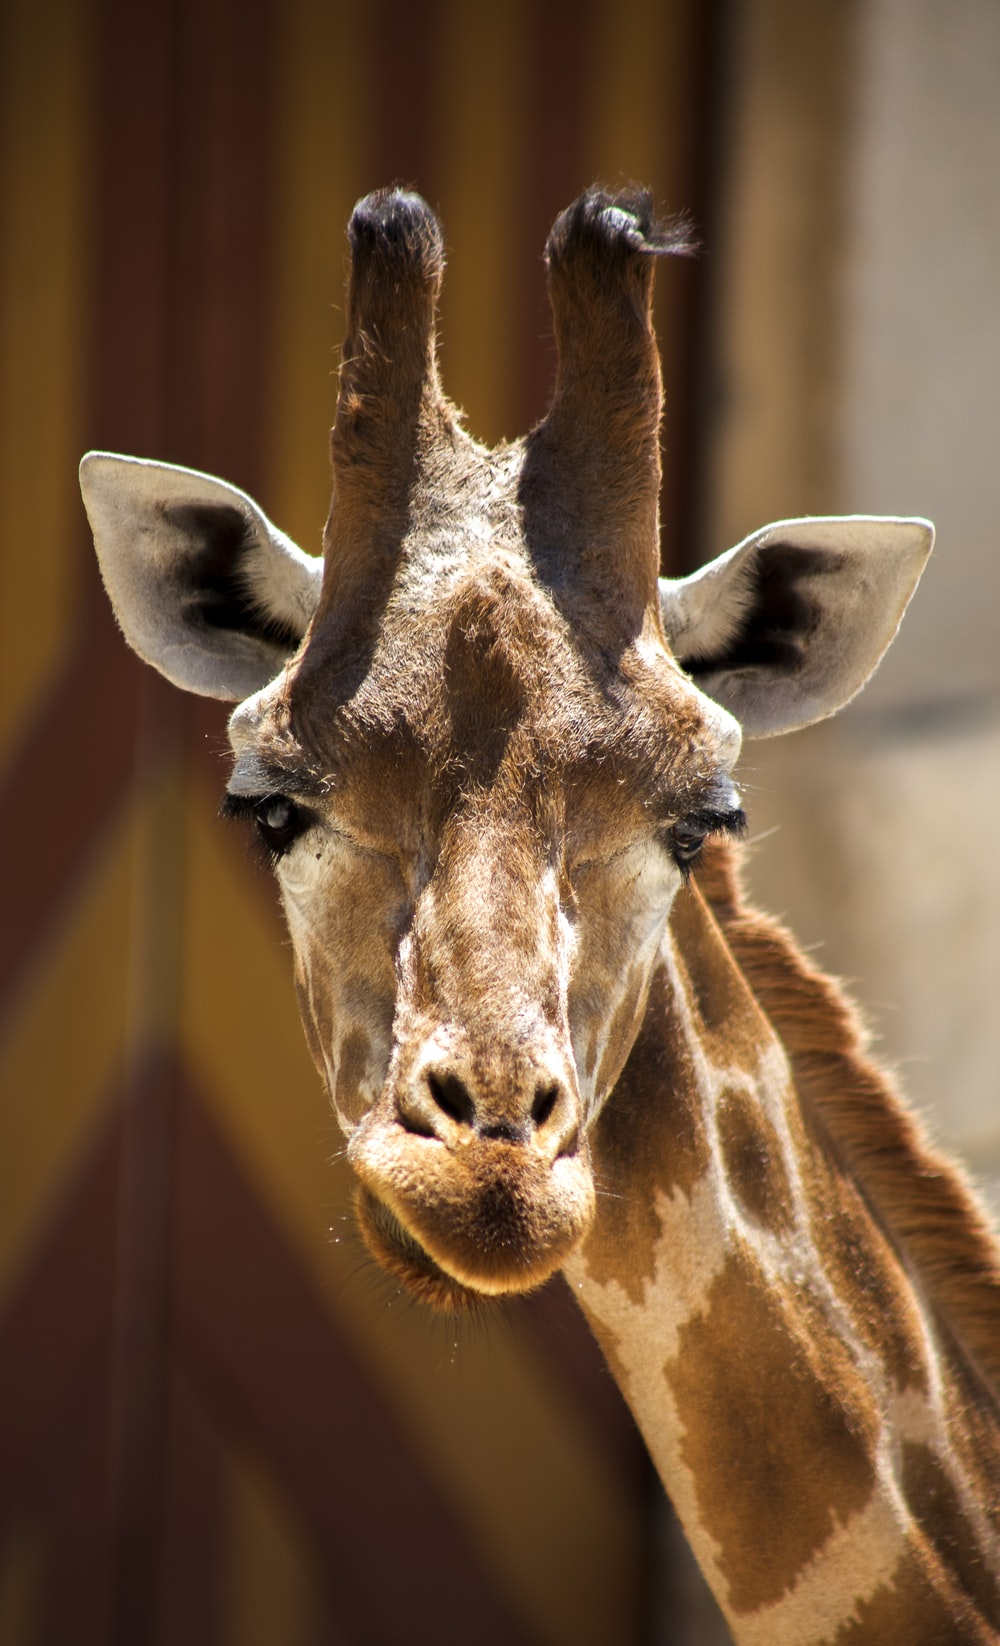 close-up photography of Giraffe during daytime